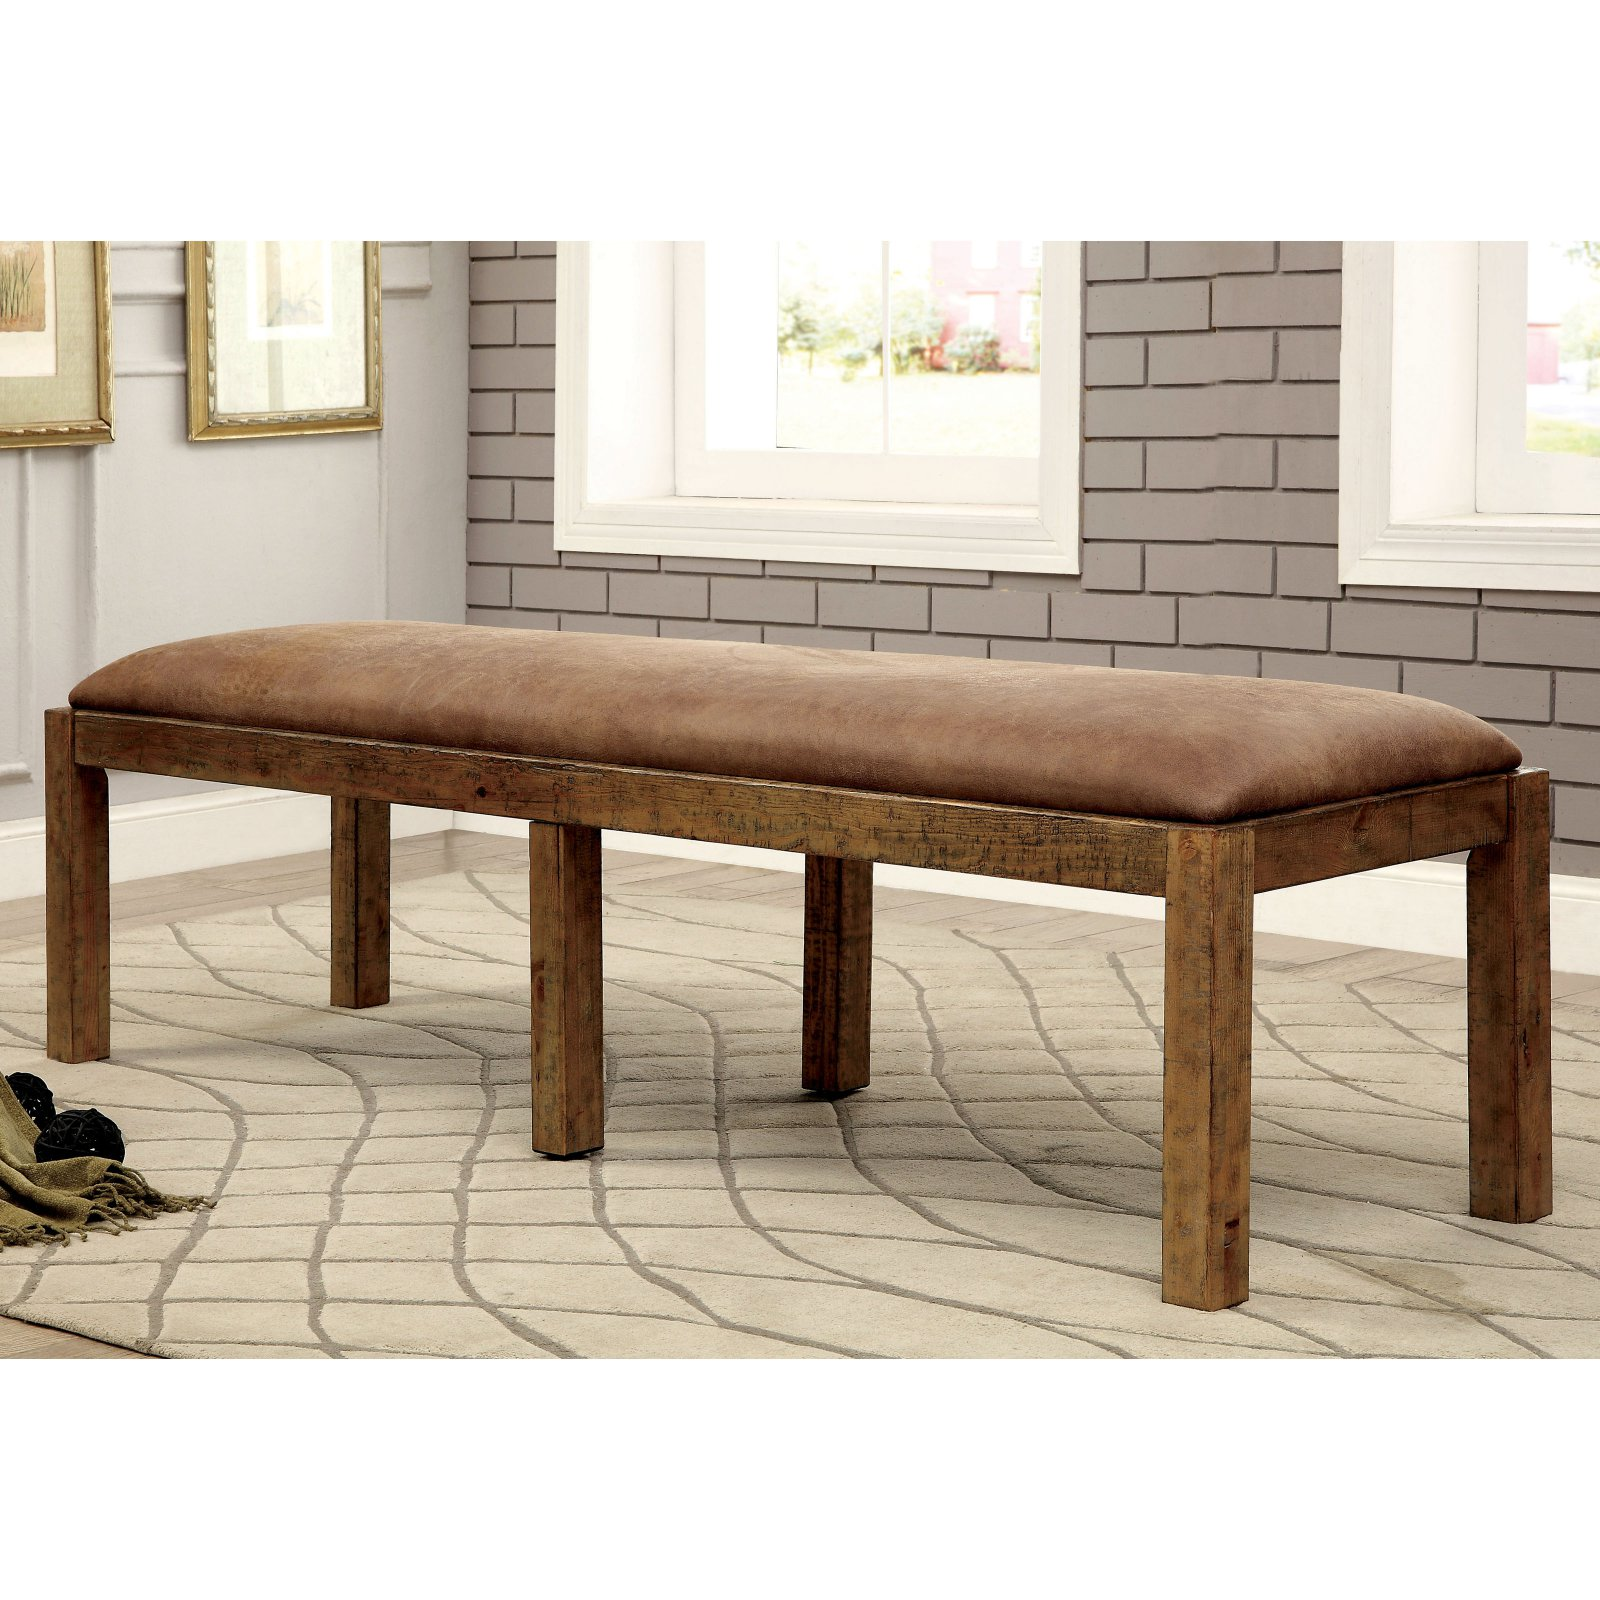 Furniture of America Camen Dining Bench